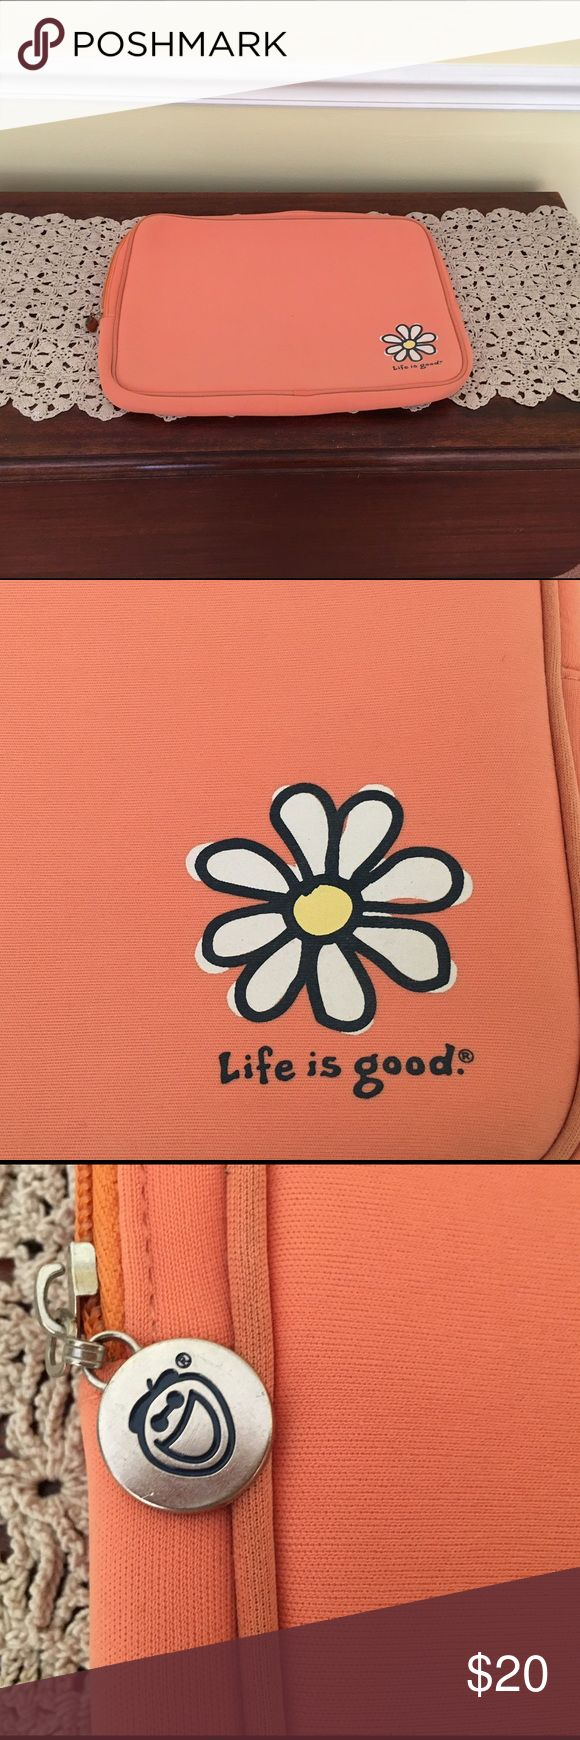 Life is good laptop case Orange laptop case. Never used. Fits up to an 18 inch laptop Life is Good Accessories Laptop Cases